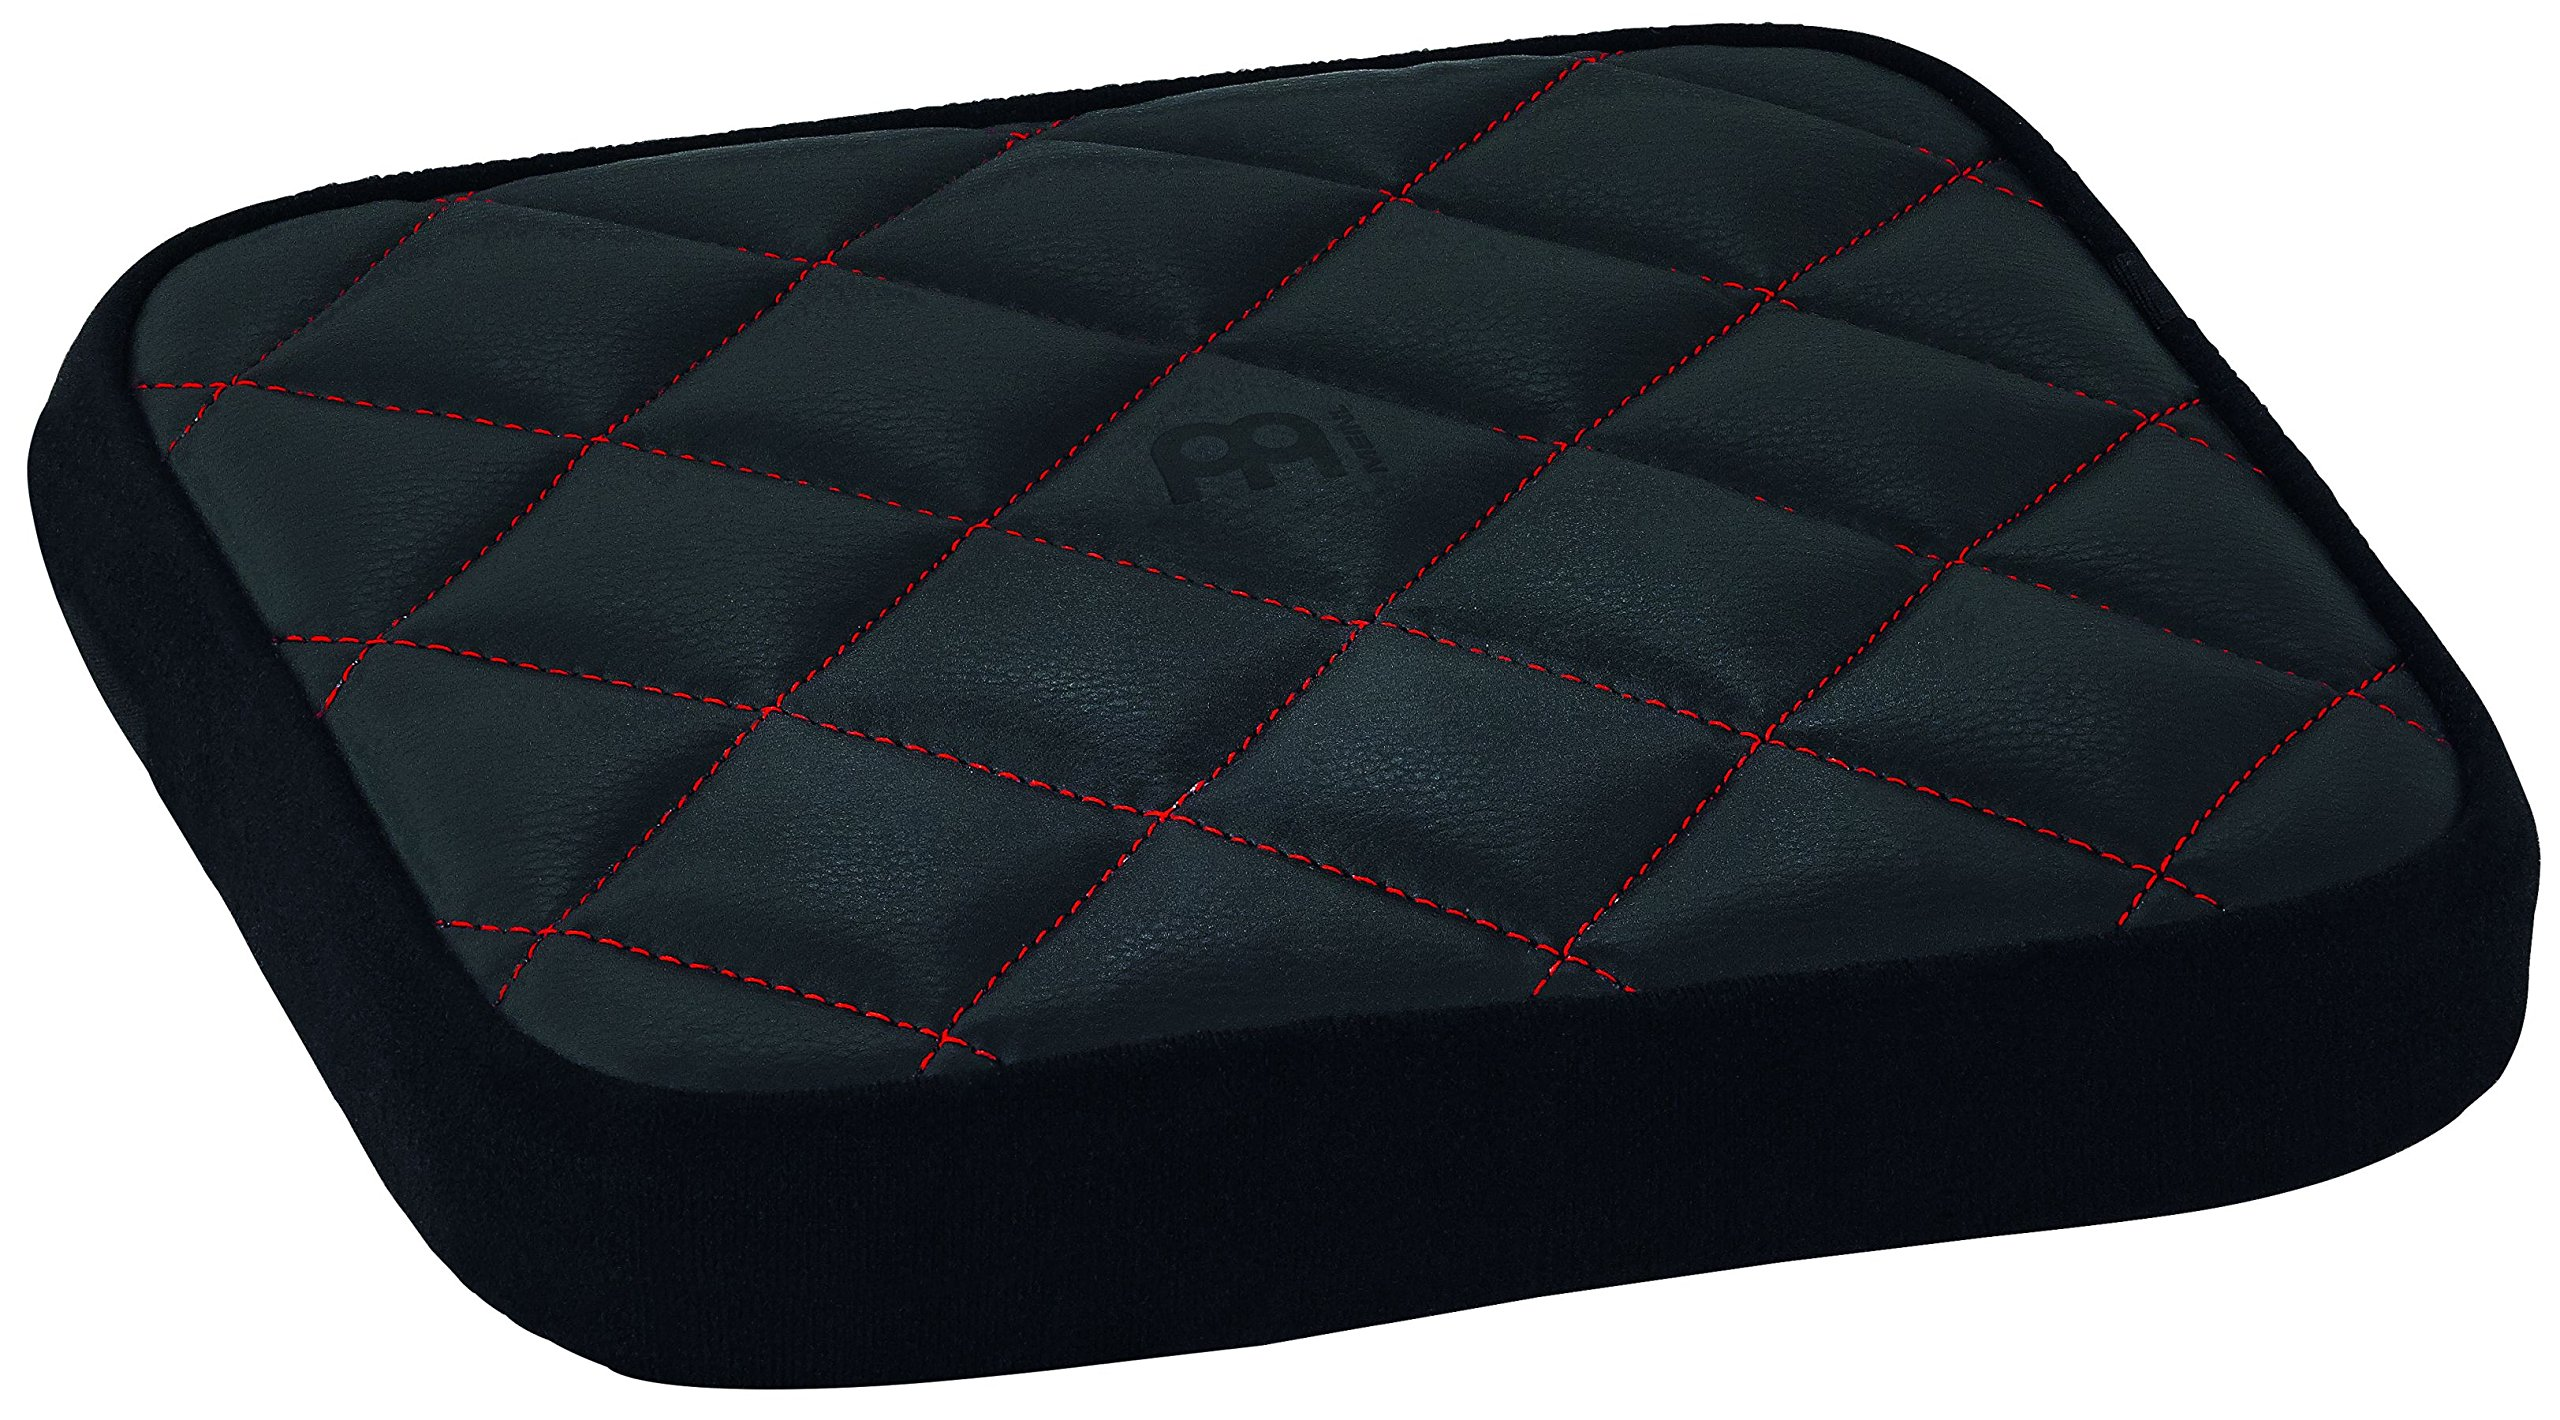 Meinl Percussion Deluxe Cajon Seat for Any Size with Thick Padding and No Adhesive Required (DCS) by Meinl Percussion